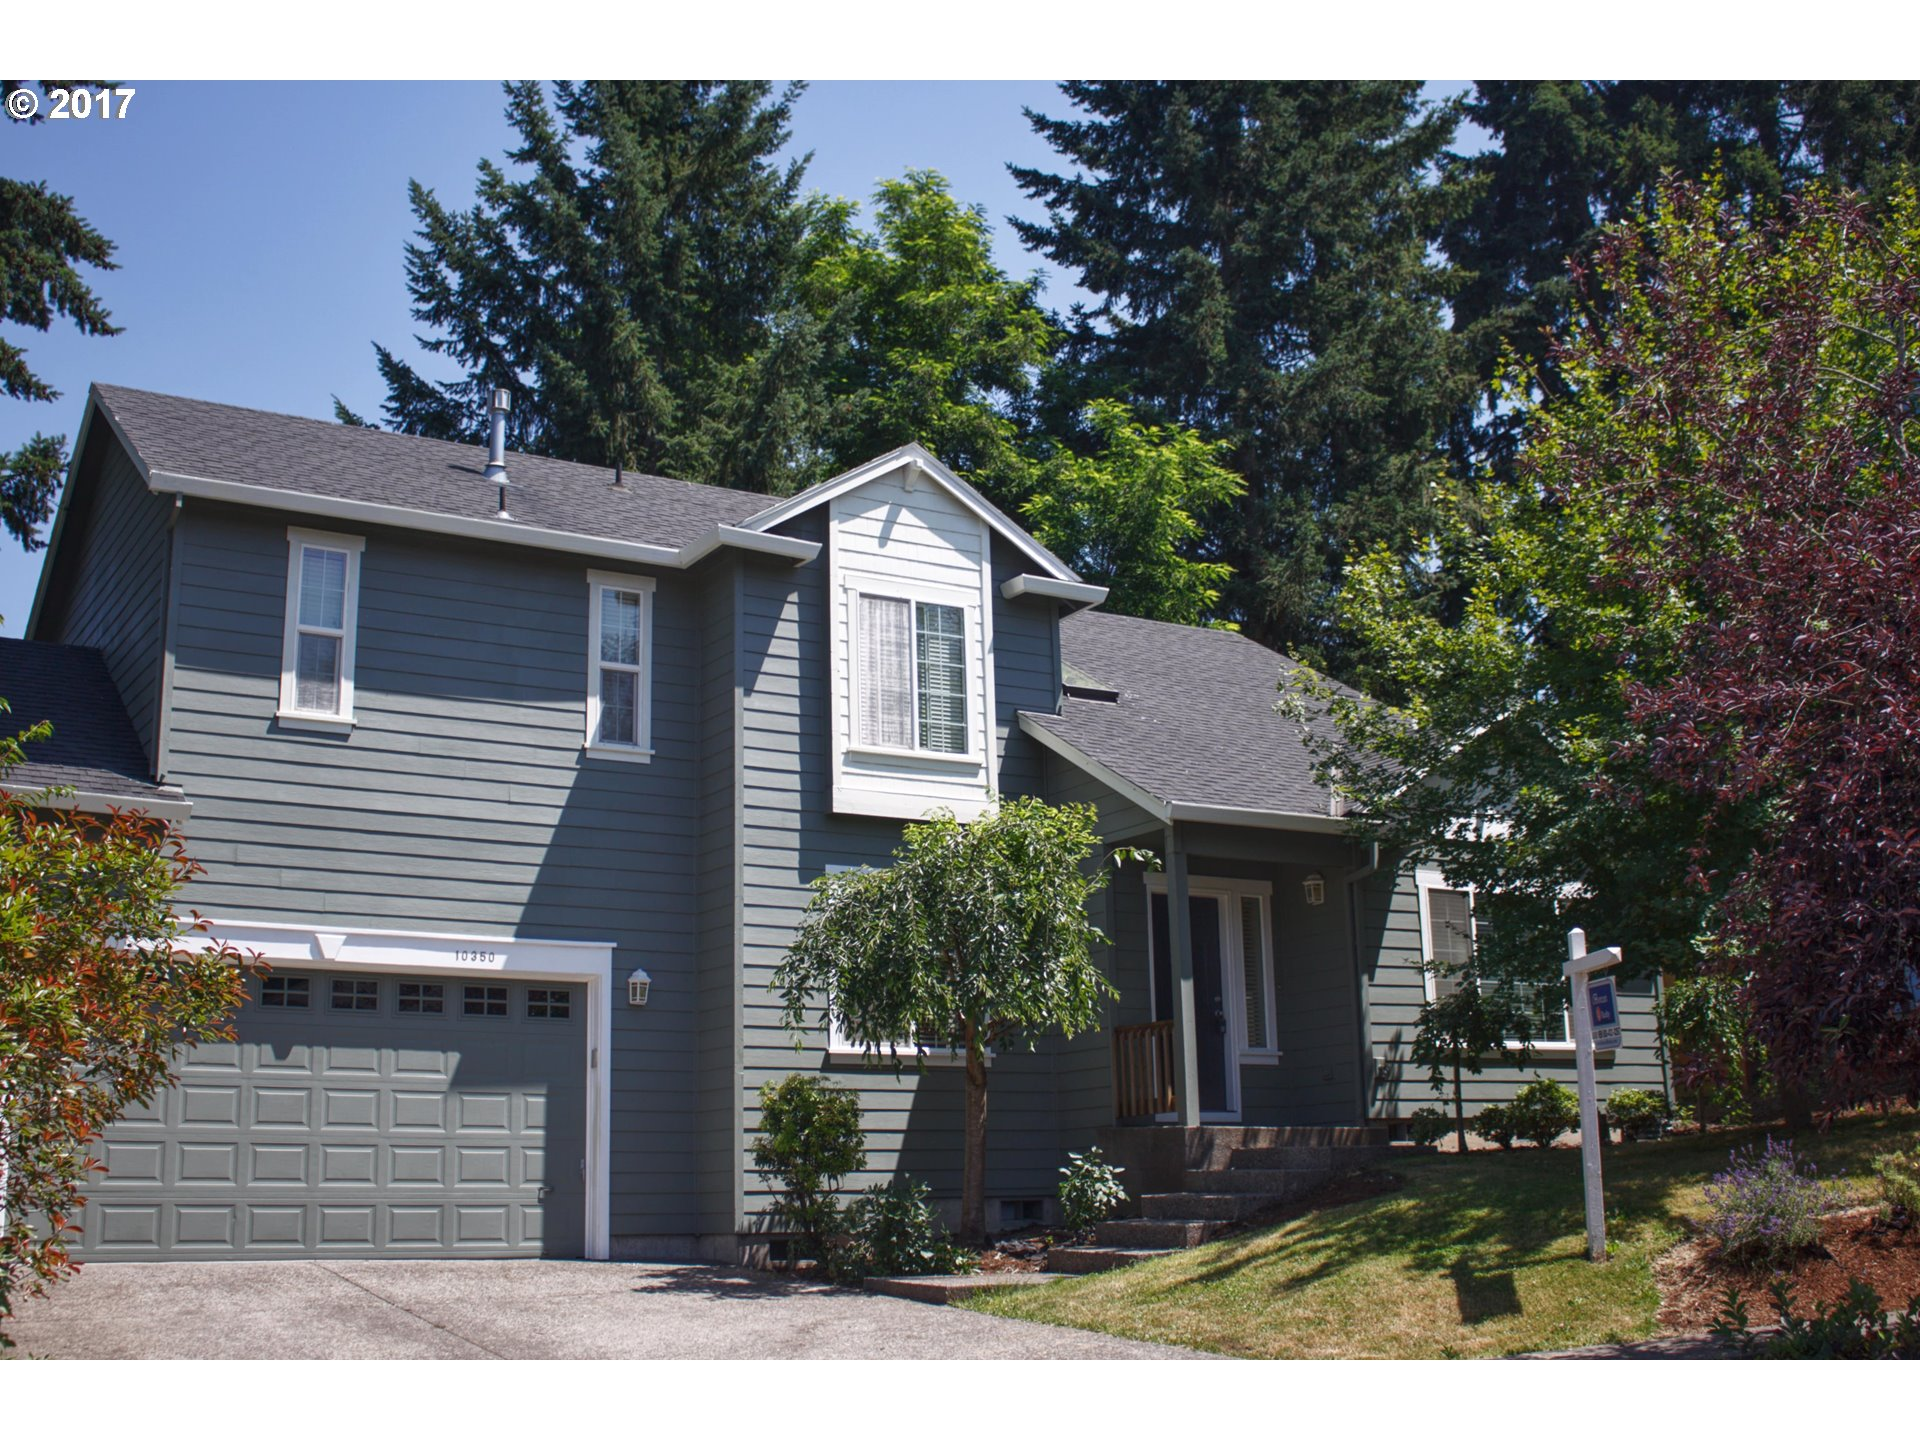 A great value home, just outside Murray Hill, Beaverton. 4 bedroom, 2.5 baths, 2 car garage.  Well maintained house. Fireplace, wood floor, vault ceiling, Living room, formal dining room, cul-de-sac court, upgrad Tile counter, new paint inside out in June/2017, new carpet in living/stairs. 2 mo old Dishwasher, toilet.  Beaverton school district.  Blocks from Progress ridge shopping center.